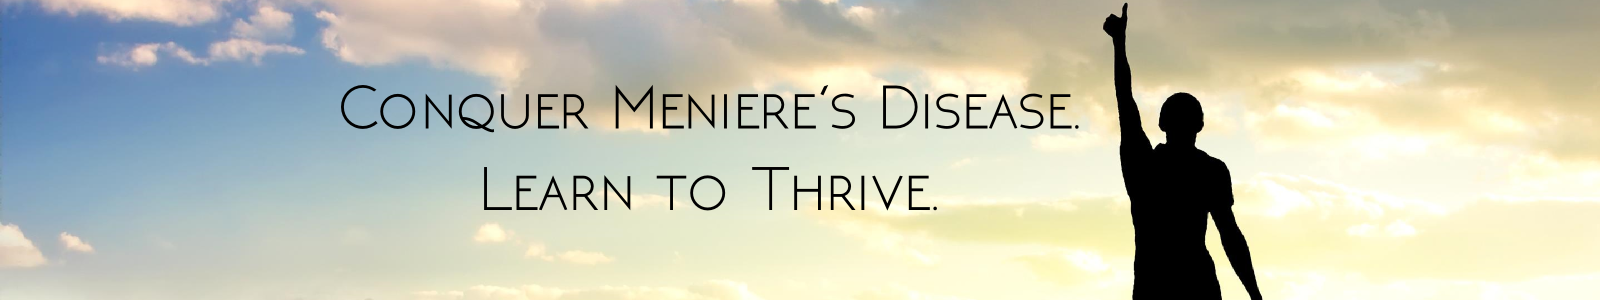 Meniere's Disease and The Battle of Brain Fog